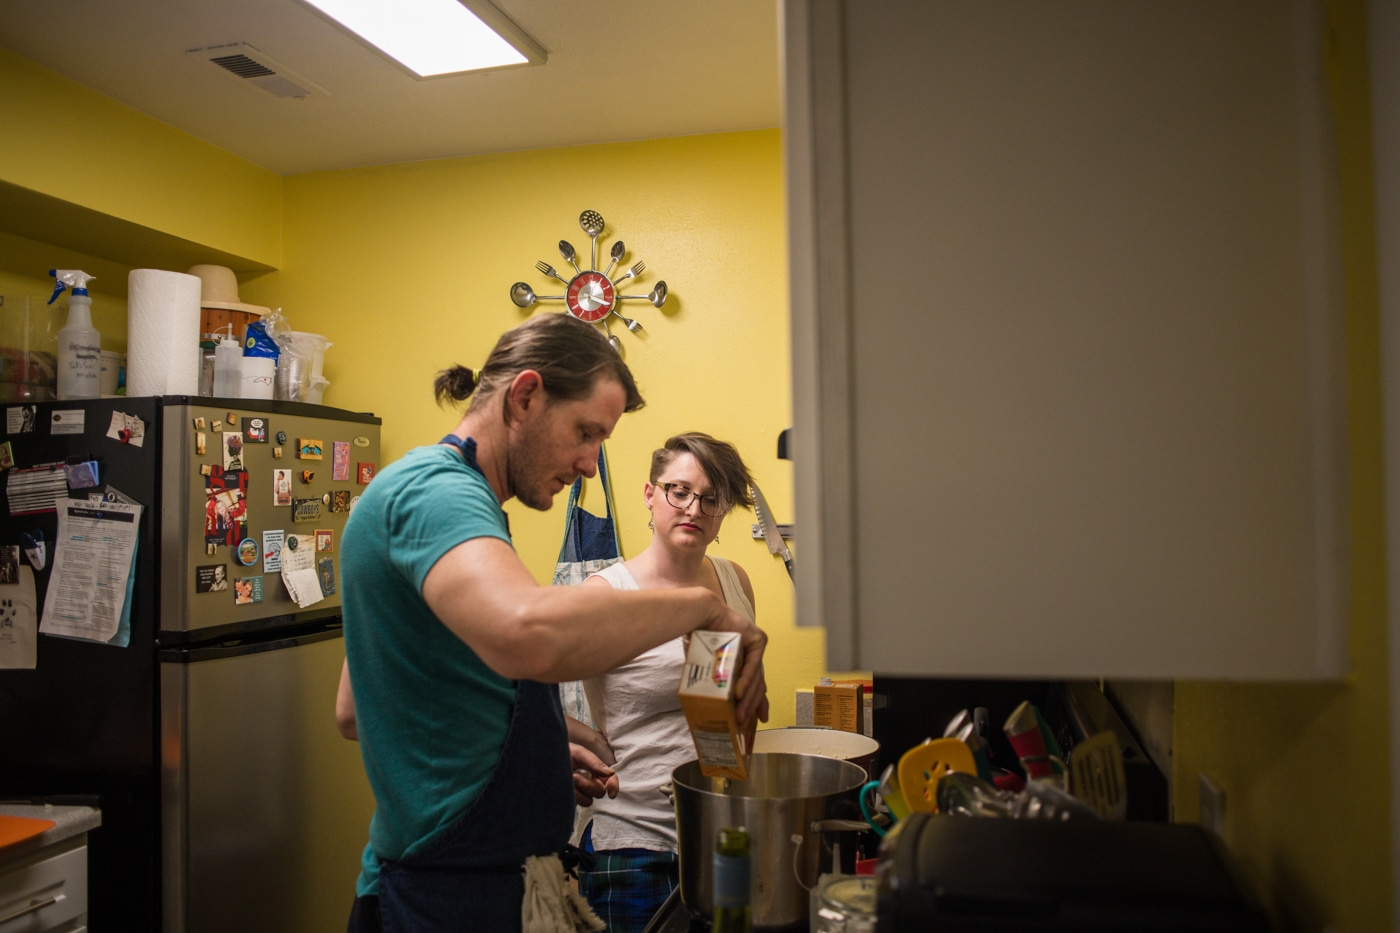 in-home engagement session with couple cooking